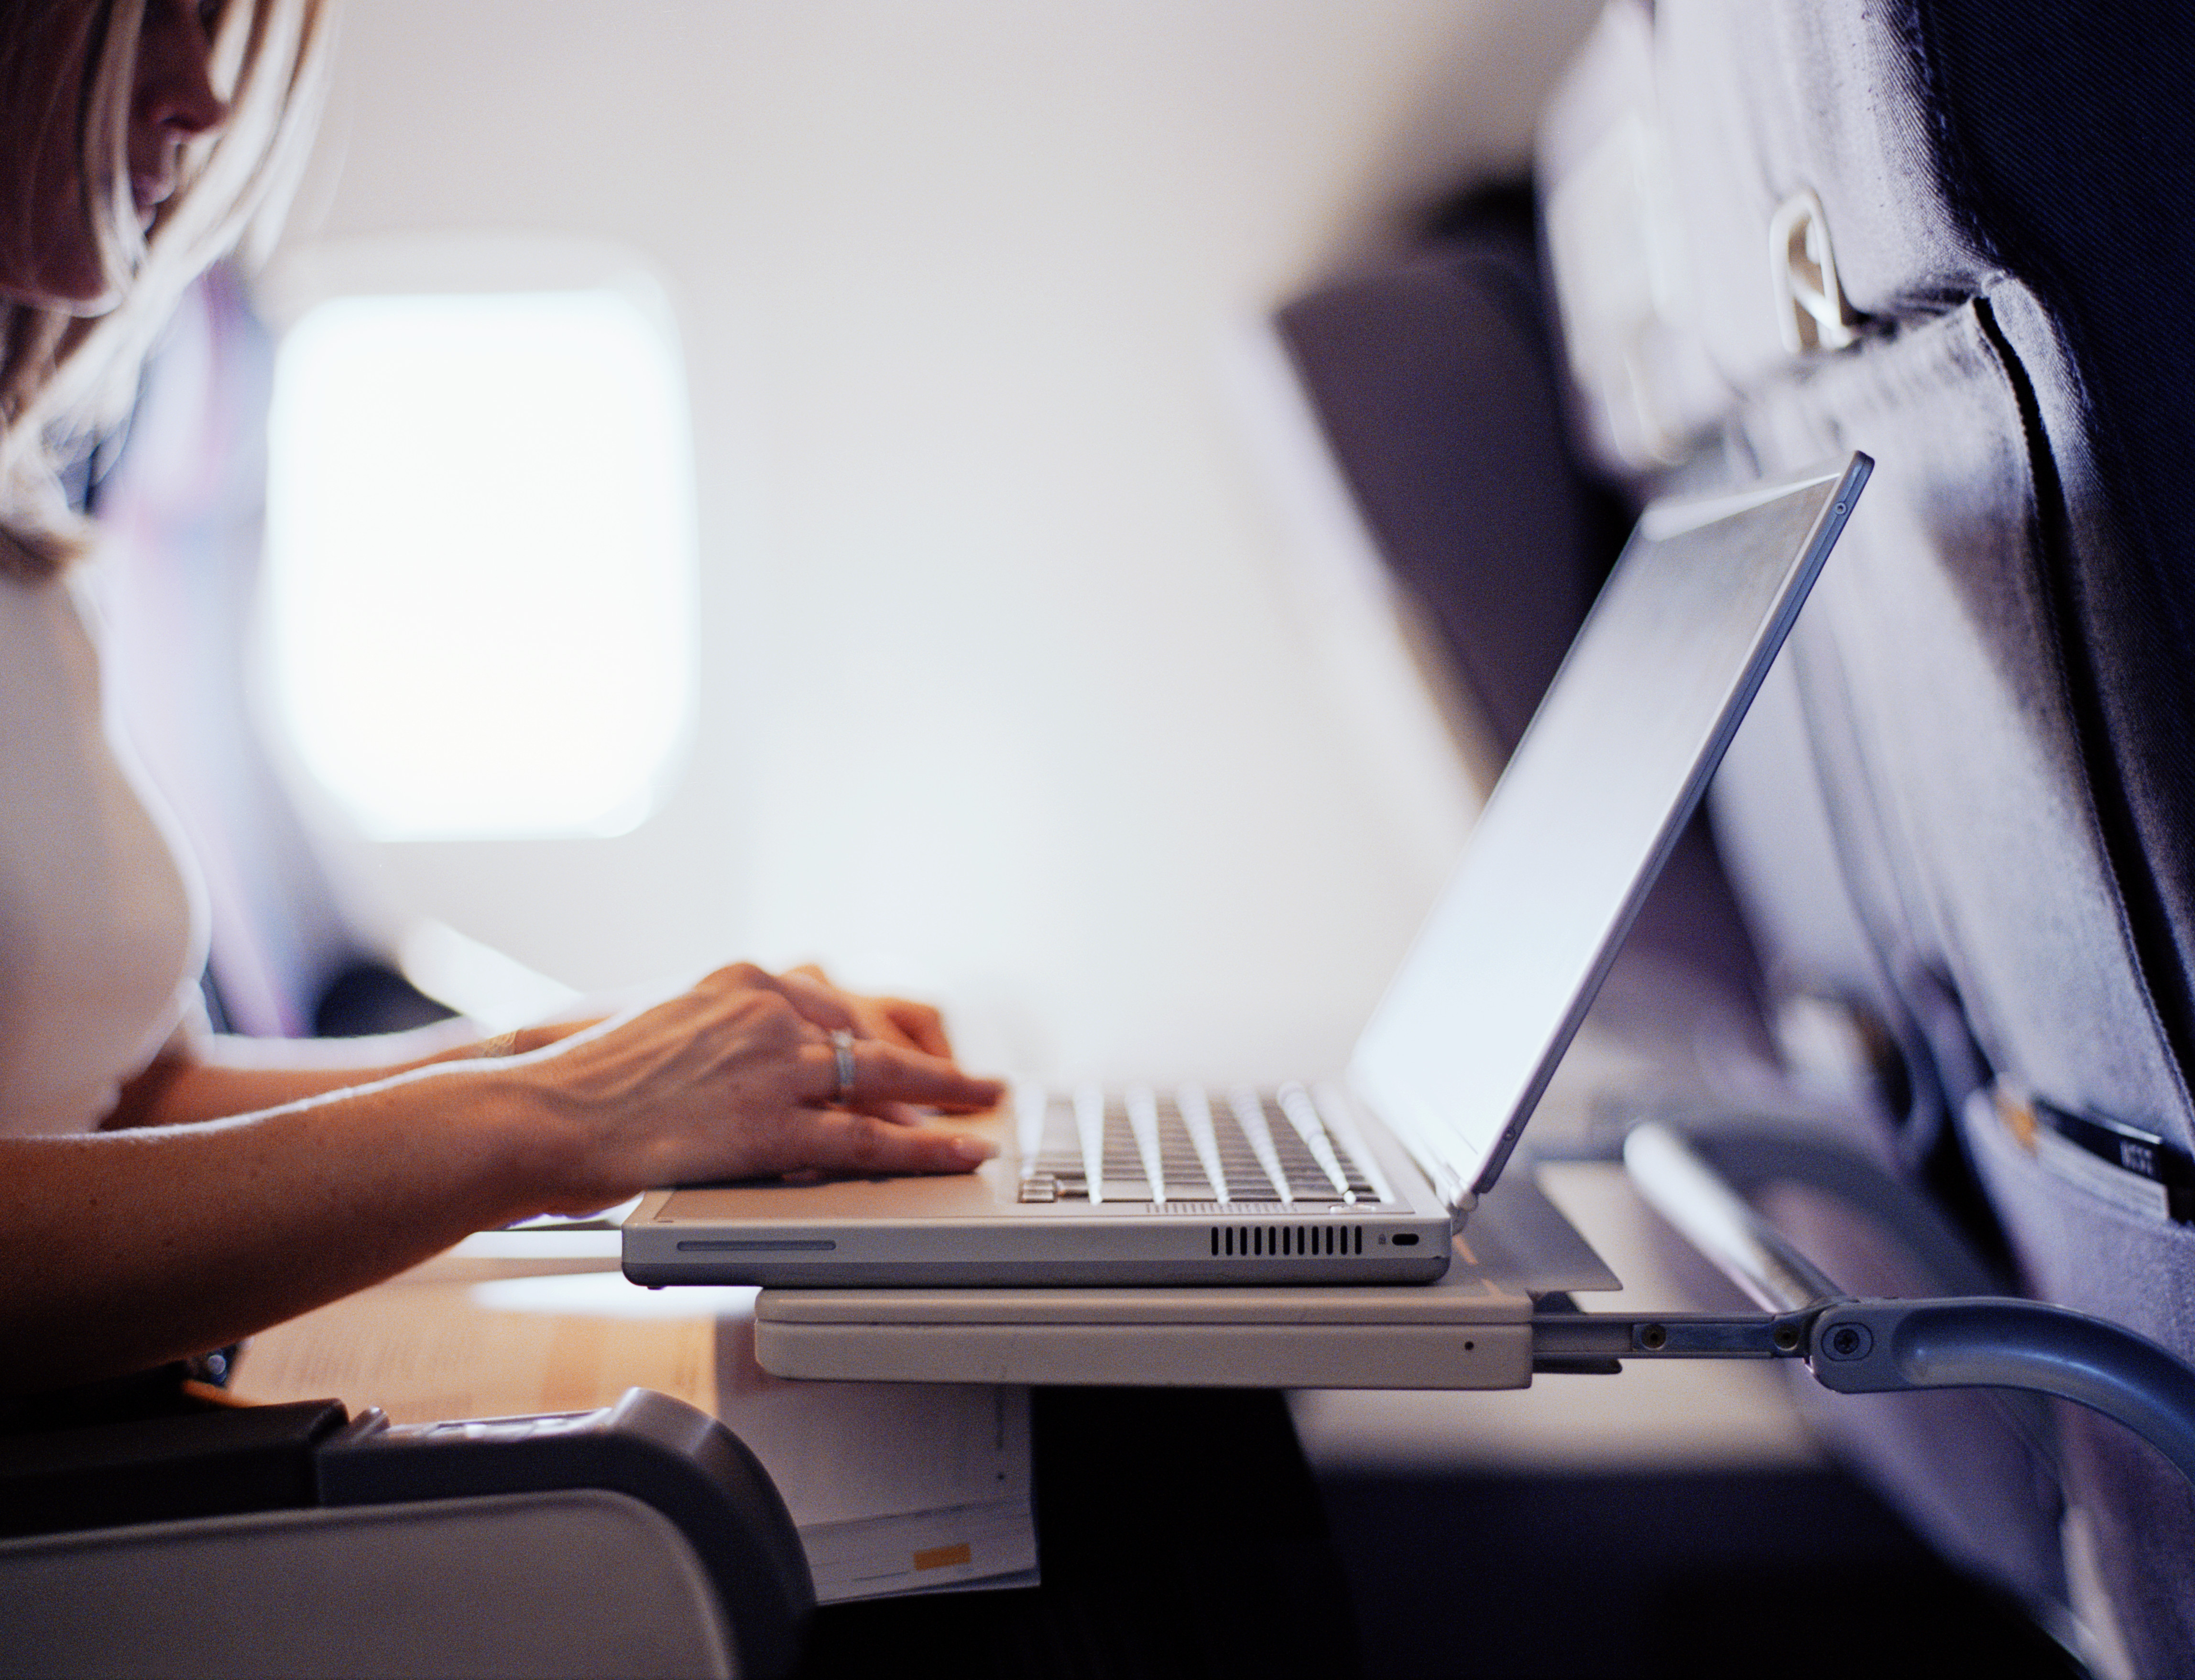 Woman typing on laptop computer in commercial airplane